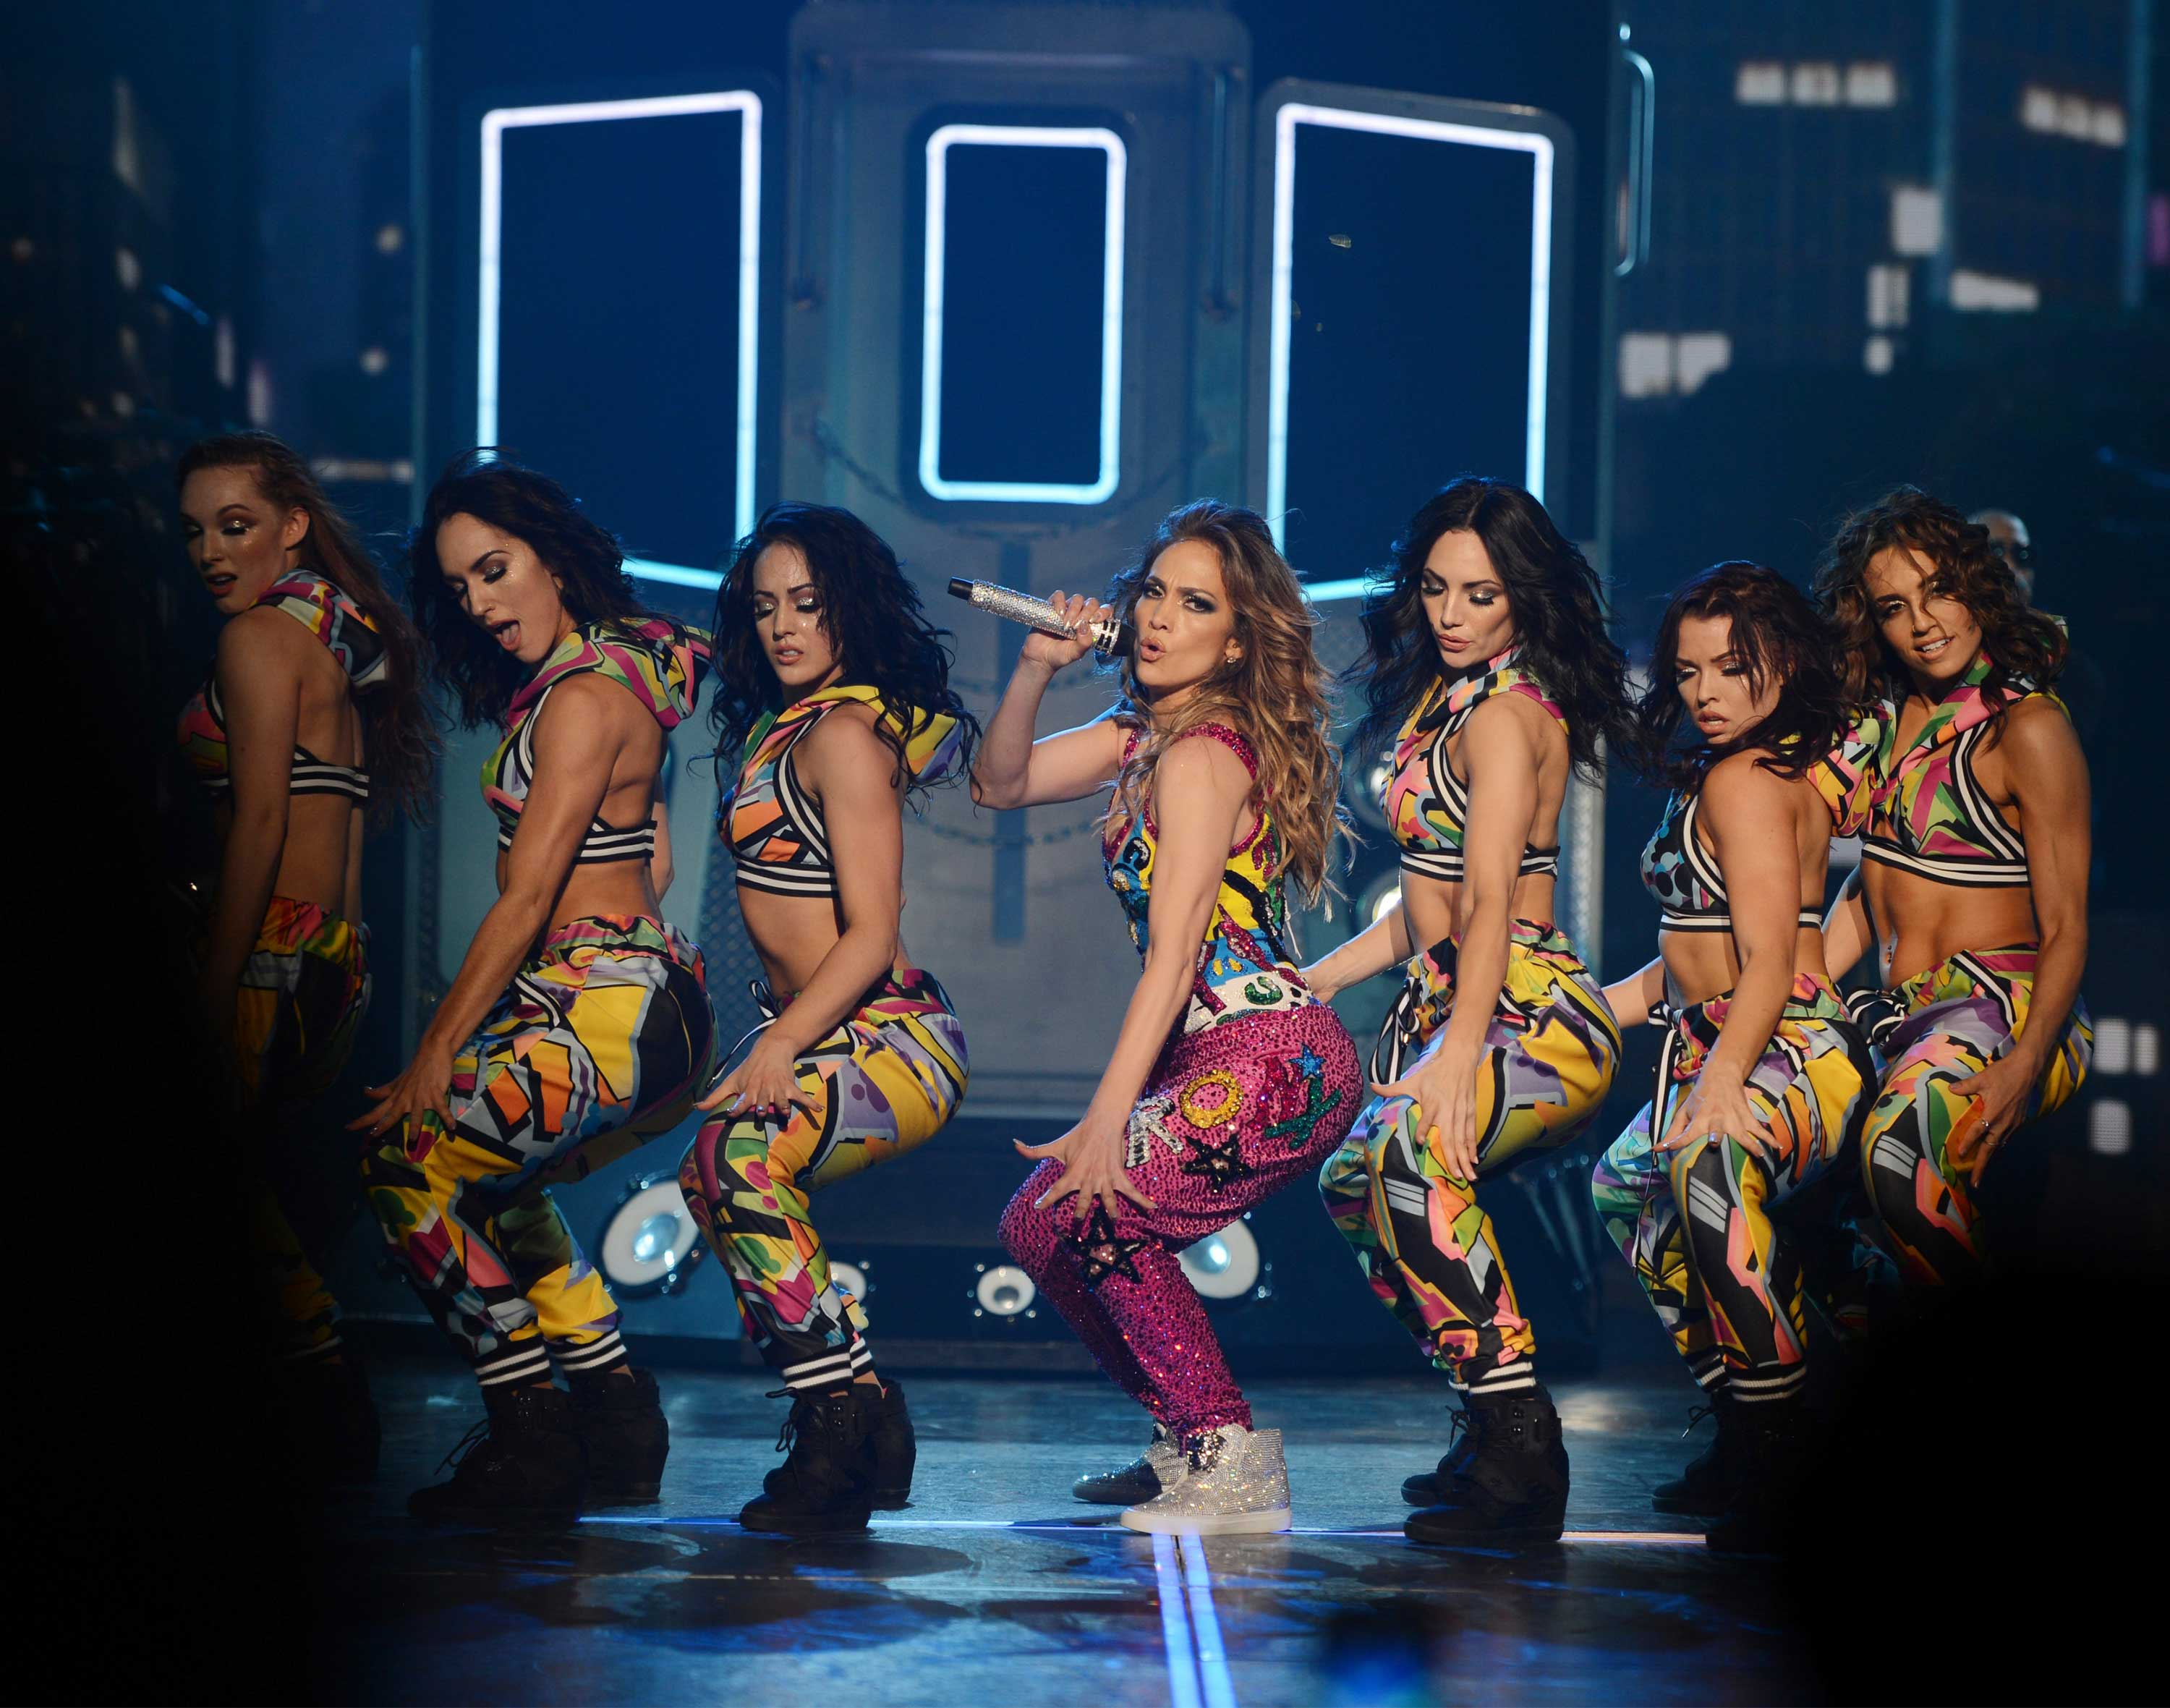 Jennifer Lopez's new show turns Las Vegas into Destination Diva